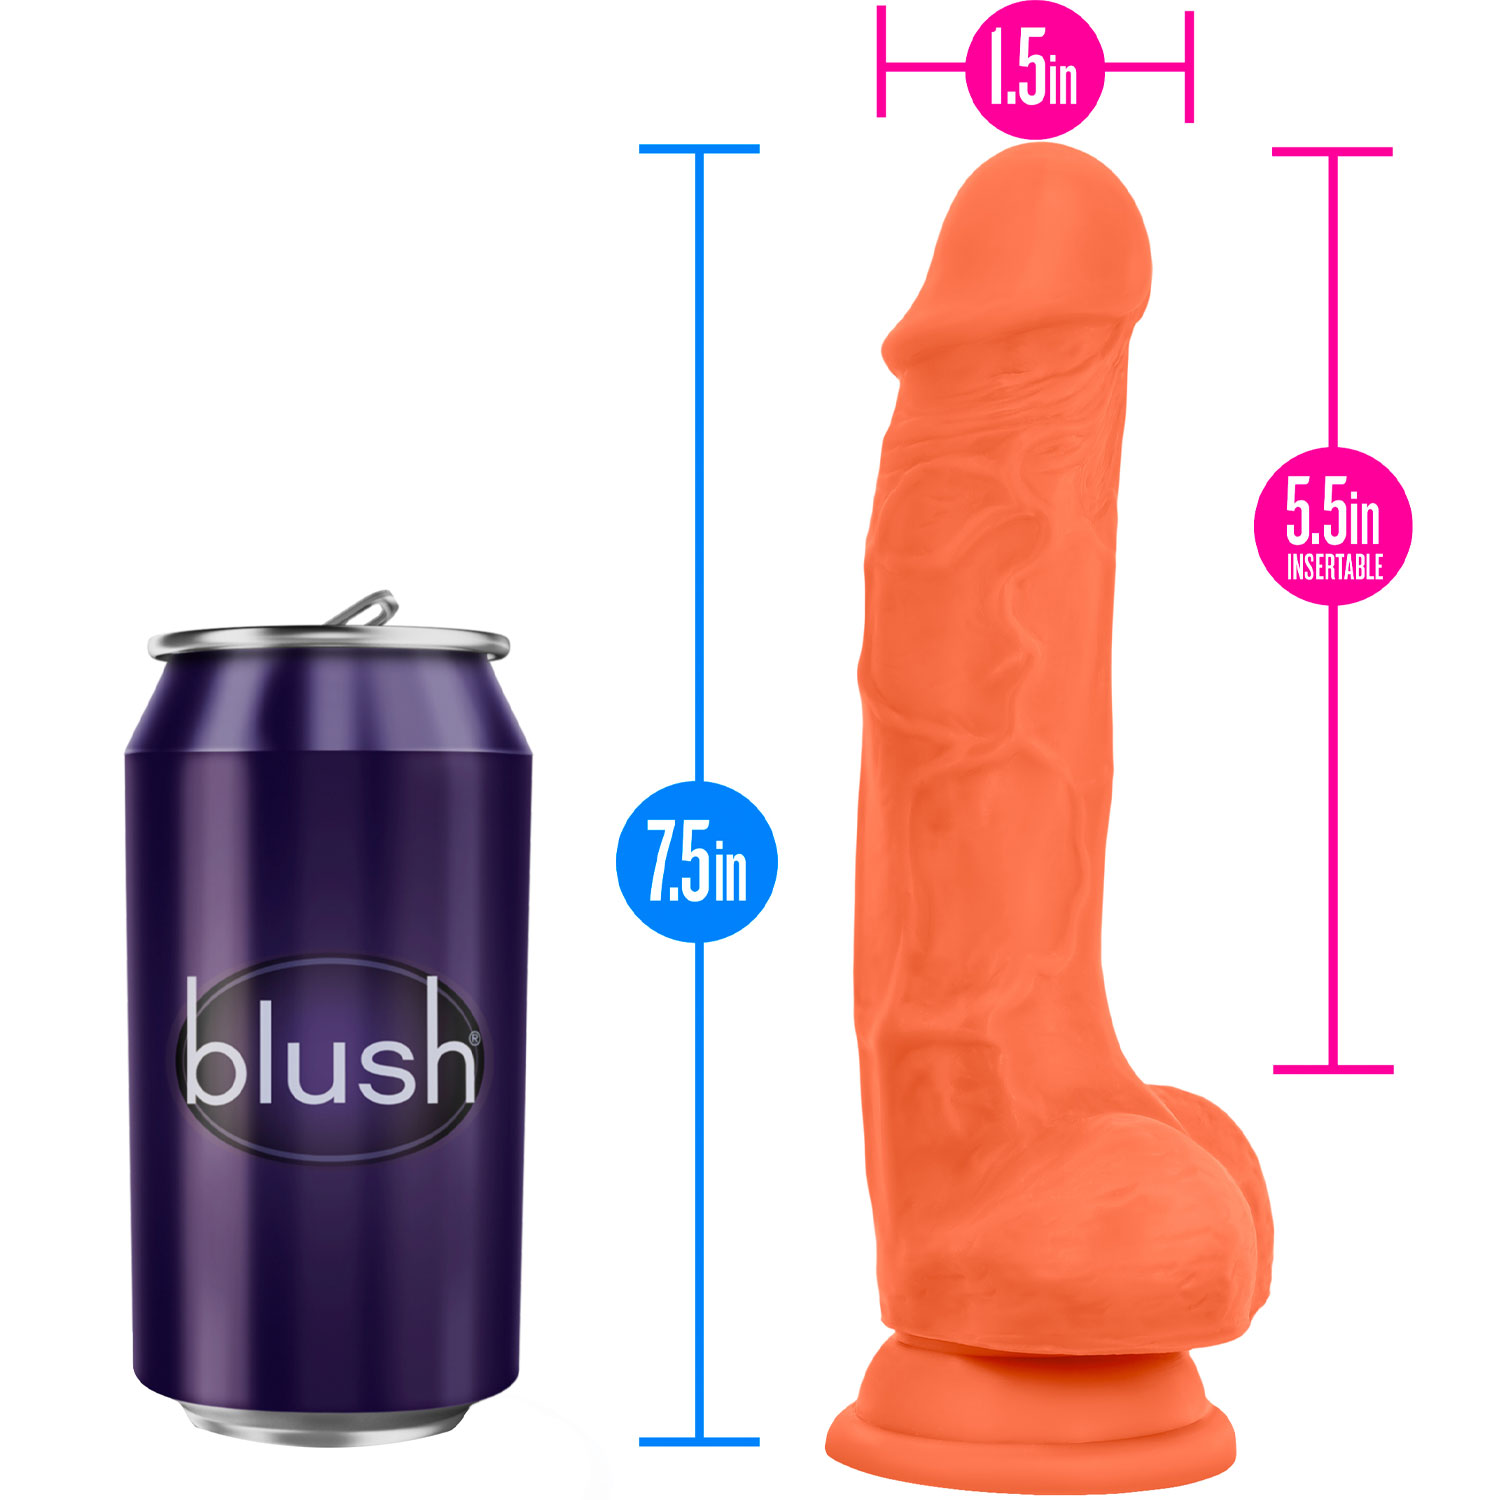 Neo Elite 7.5 Inch Dual Density Realistic Silicone Dildo With Balls by Blush - Measurements